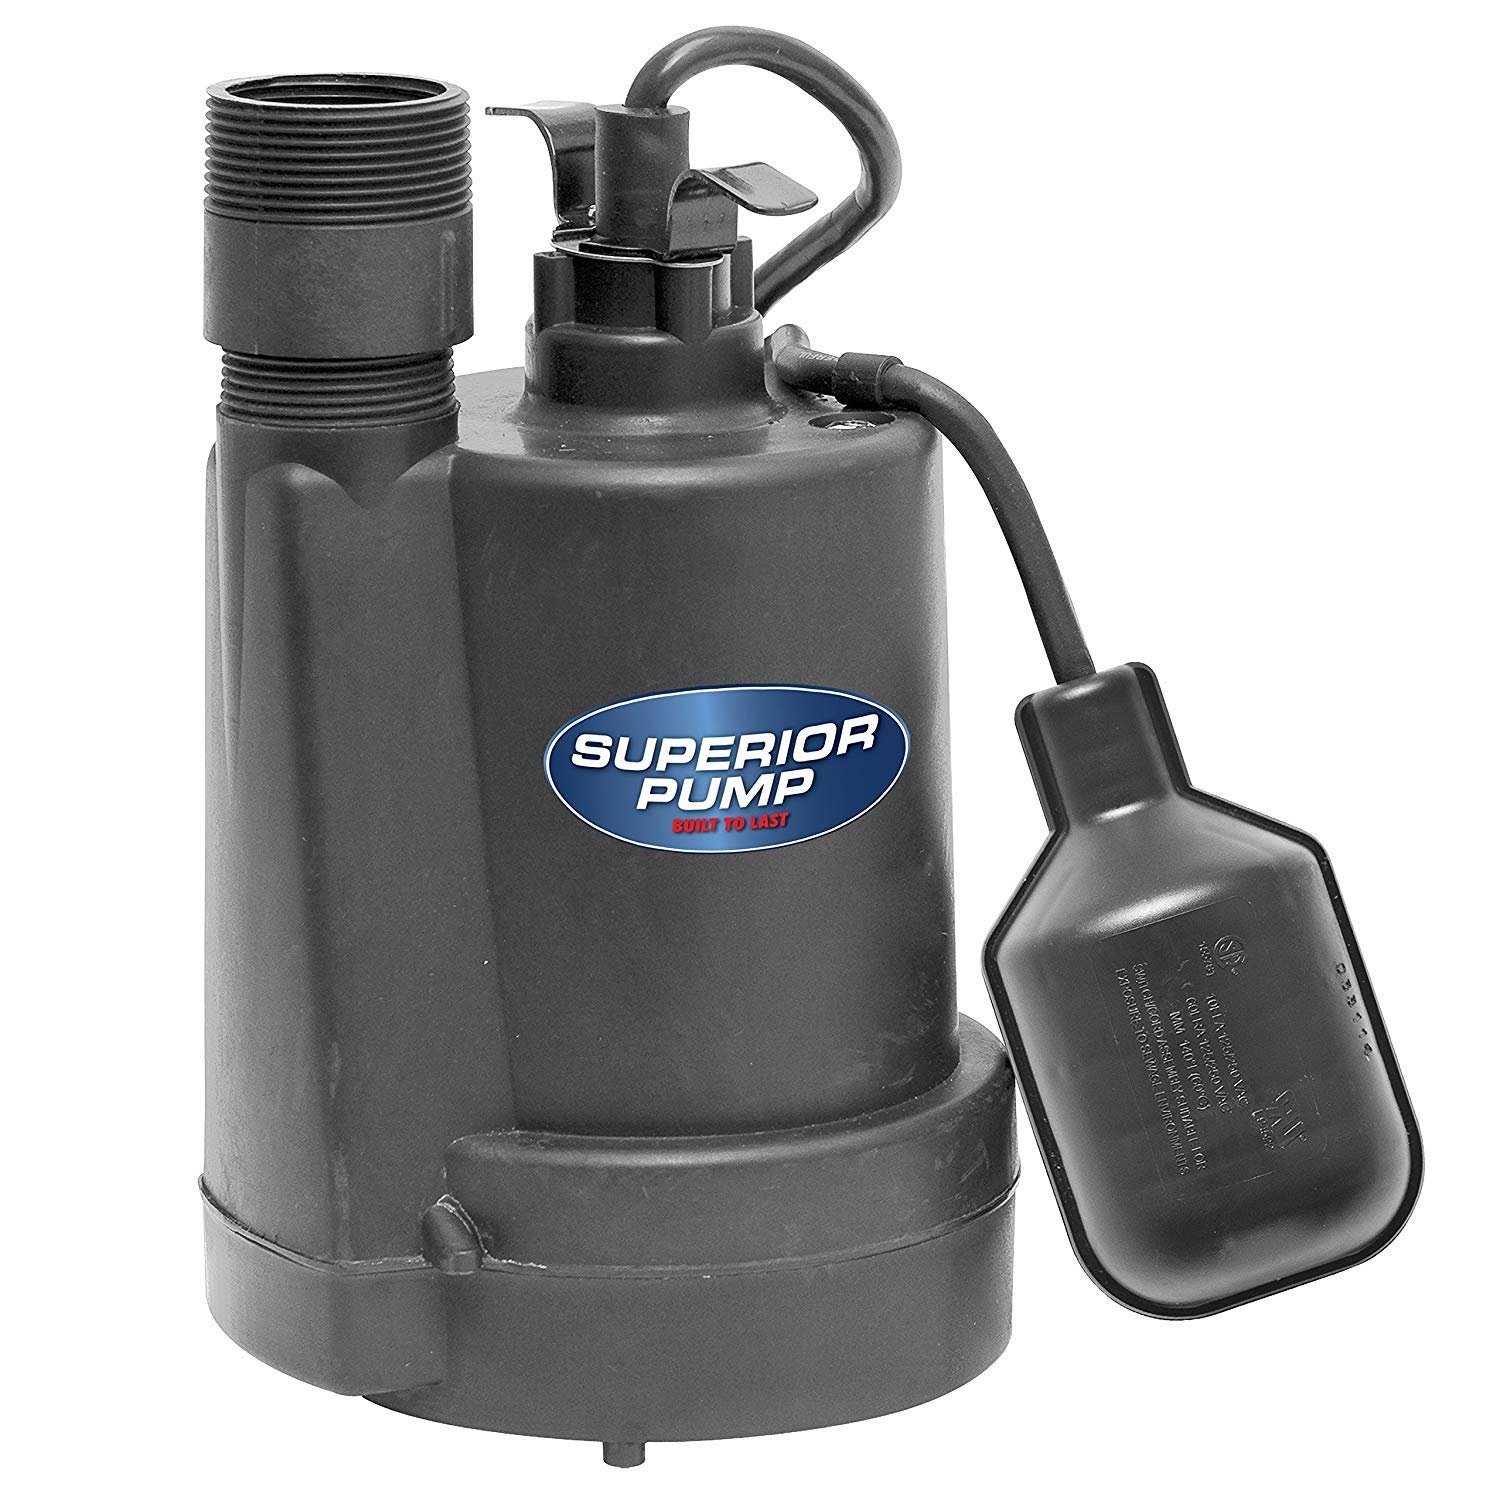 Superior Pump 92250 1/4-HP Thermoplastic Submersible Sump Pump with Tethered Float Switch by Superior Pump